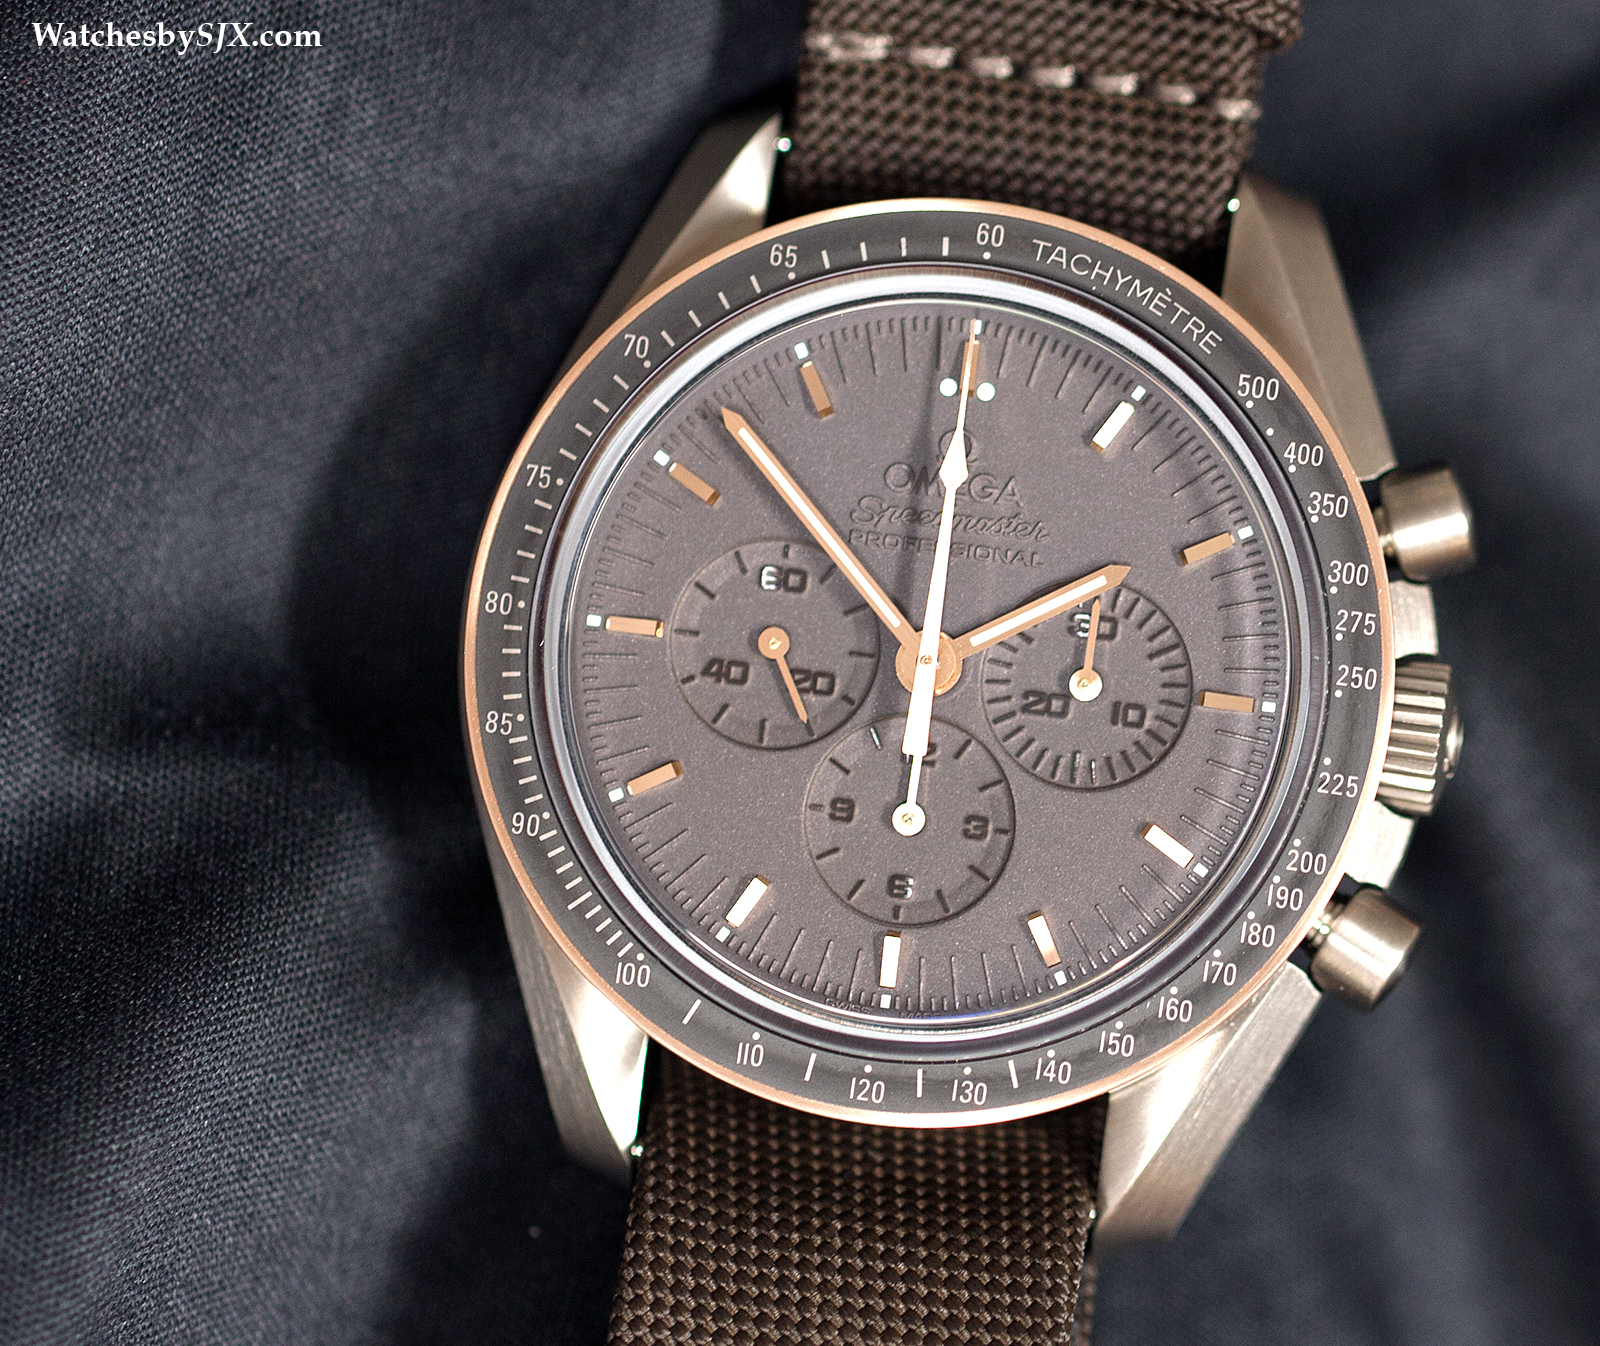 Omega-Speedmaster-Moonwatch-Apollo-11-45th-Anniversary-21